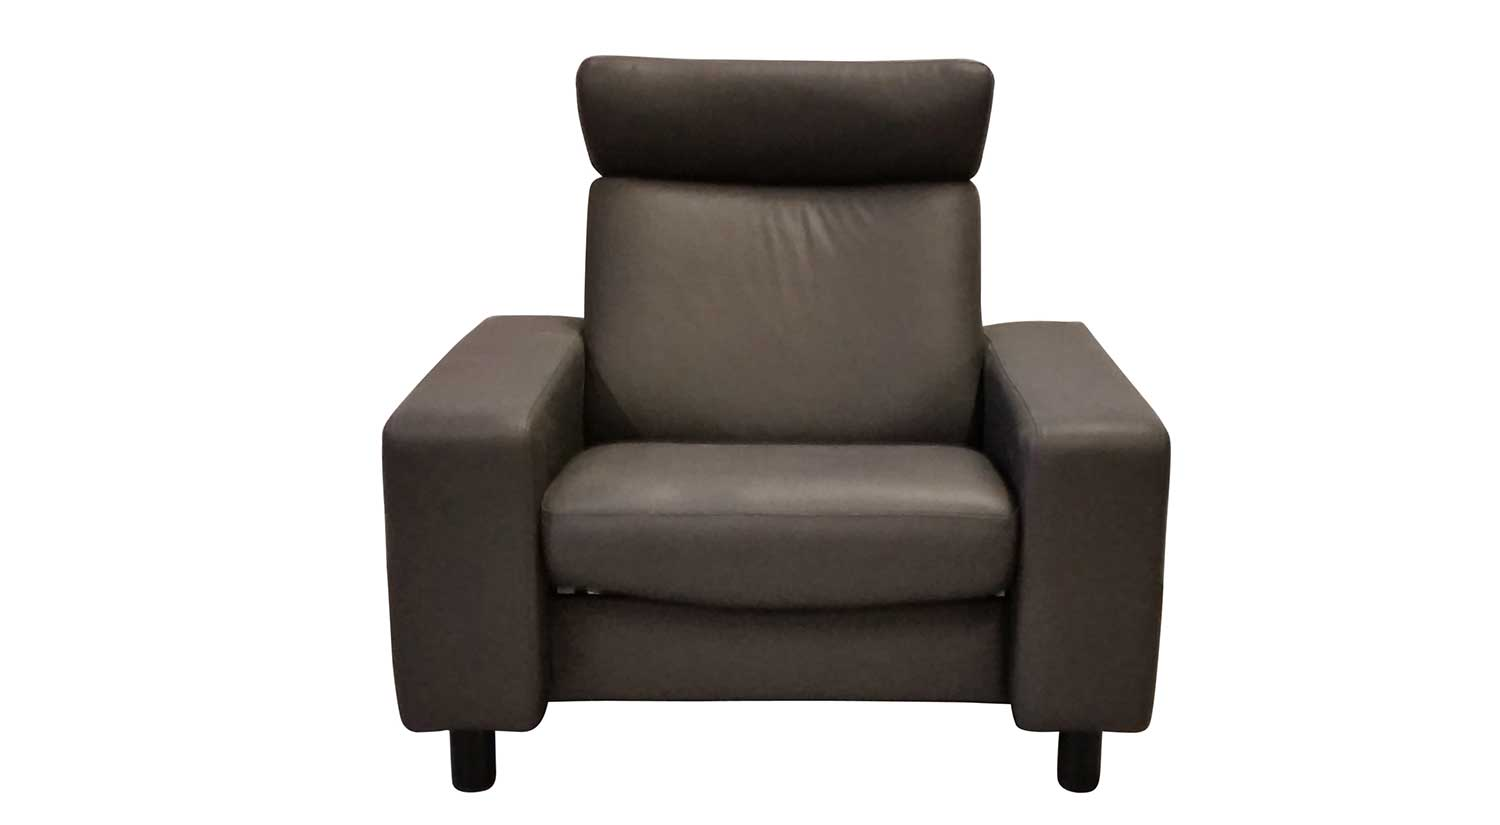 circle furniture space stressless chair recliner sale